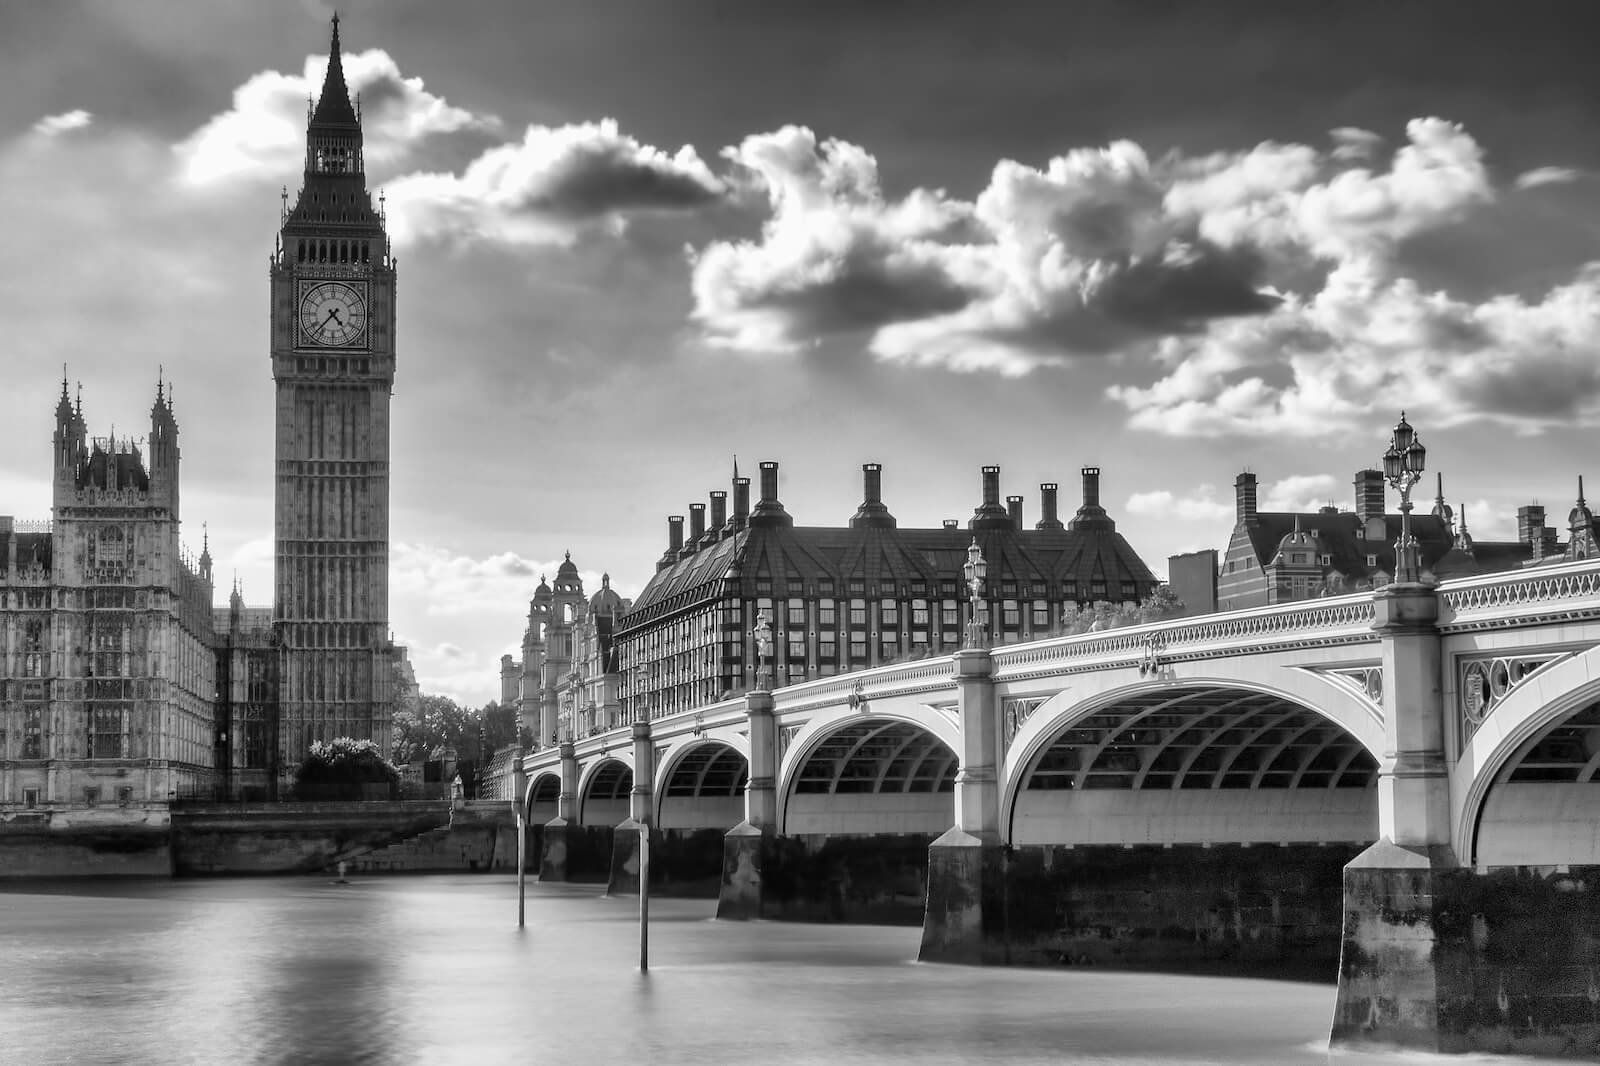 Free Images for Websites Big Ben